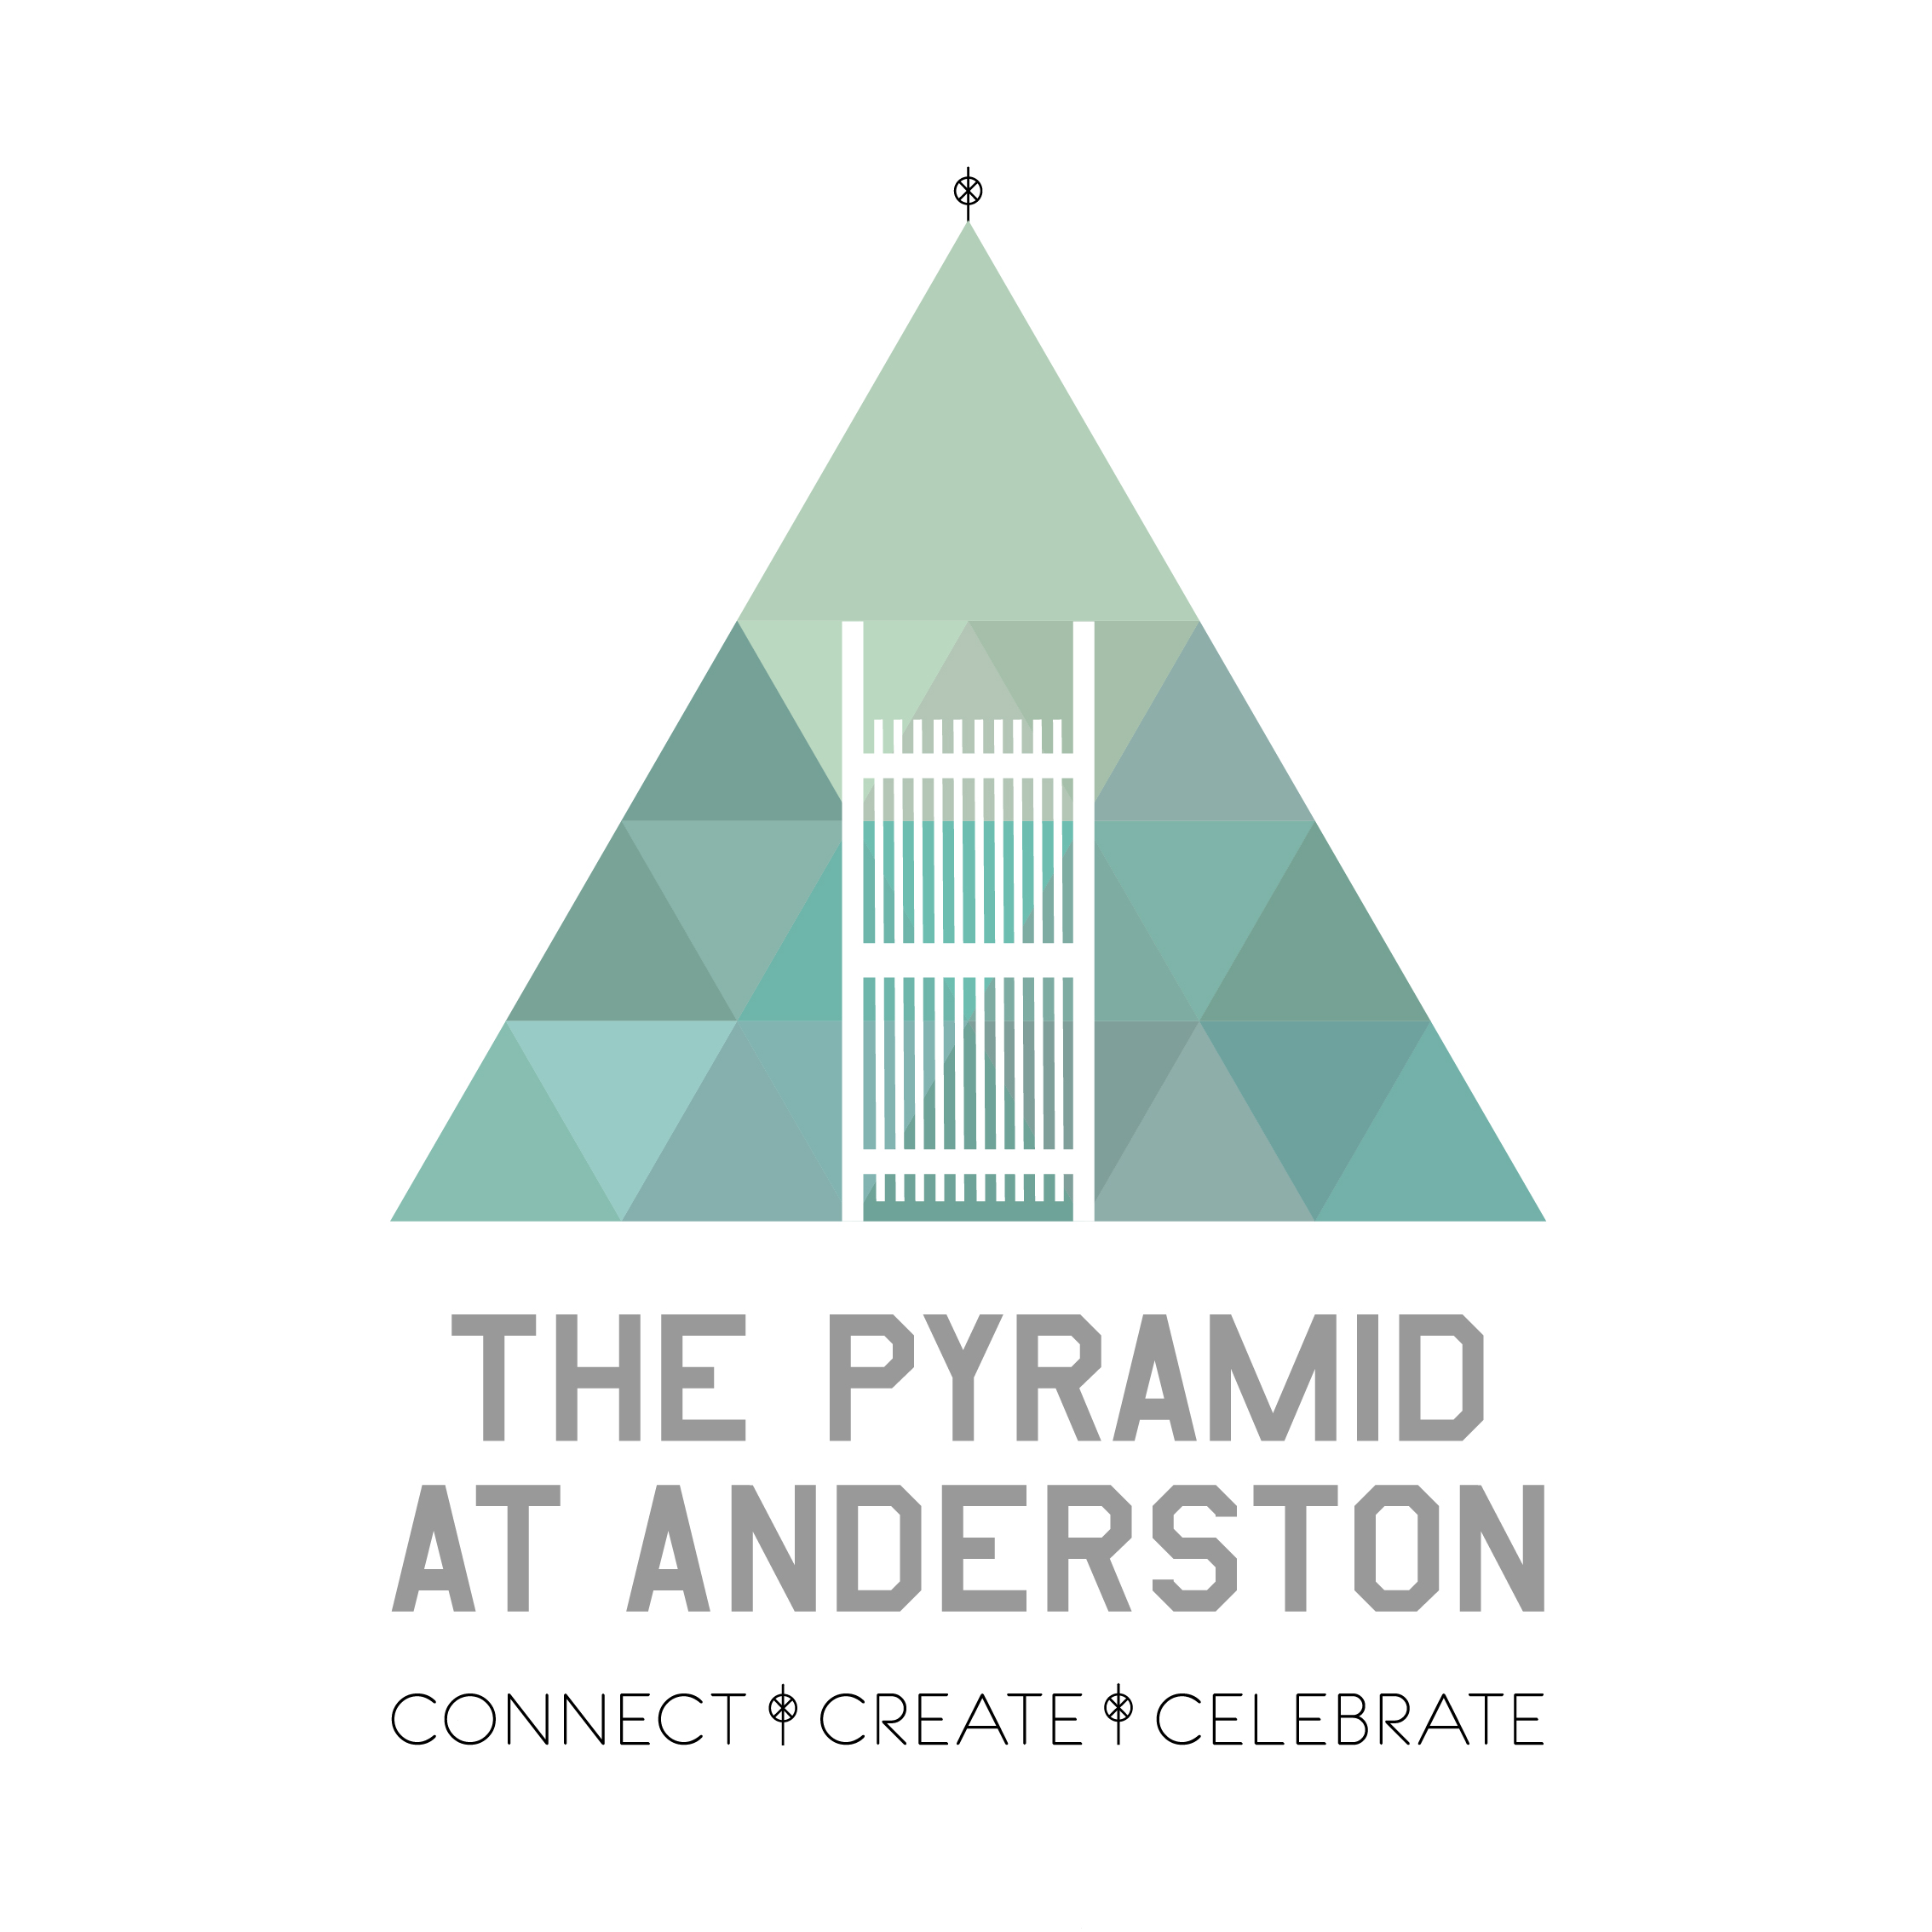 Our Identity - A Logo which is unquestionably The Pyramid at Anderston.A logo which can be simplified to suit a one colour print or mono and still keep it's essence.A logo which does not need it's name and is still recognisable.